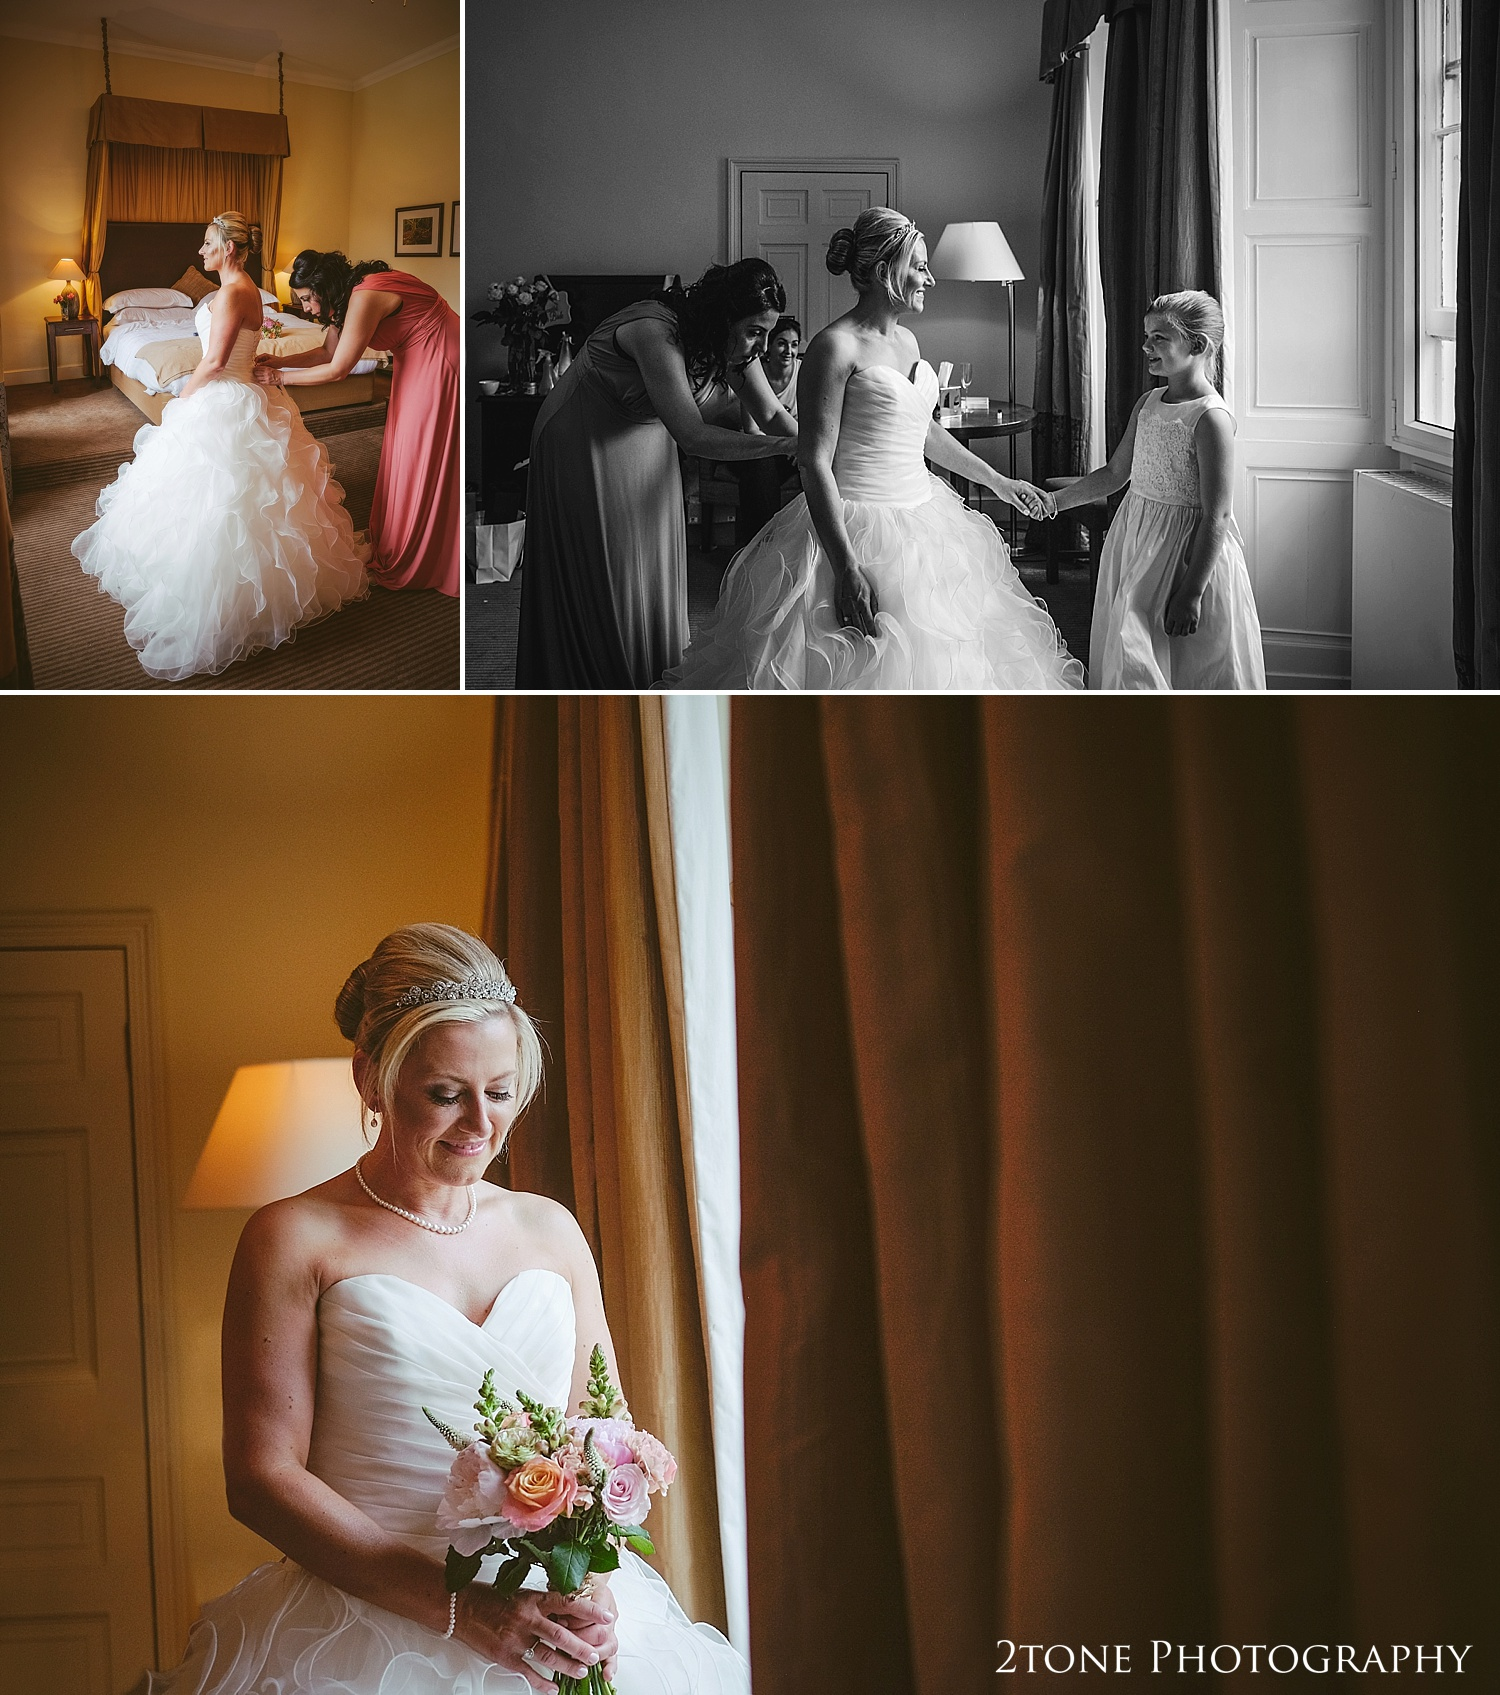 Bridal portraiture by Newcastle and Durham based wedding photographers www.2tonephotography.co.uk